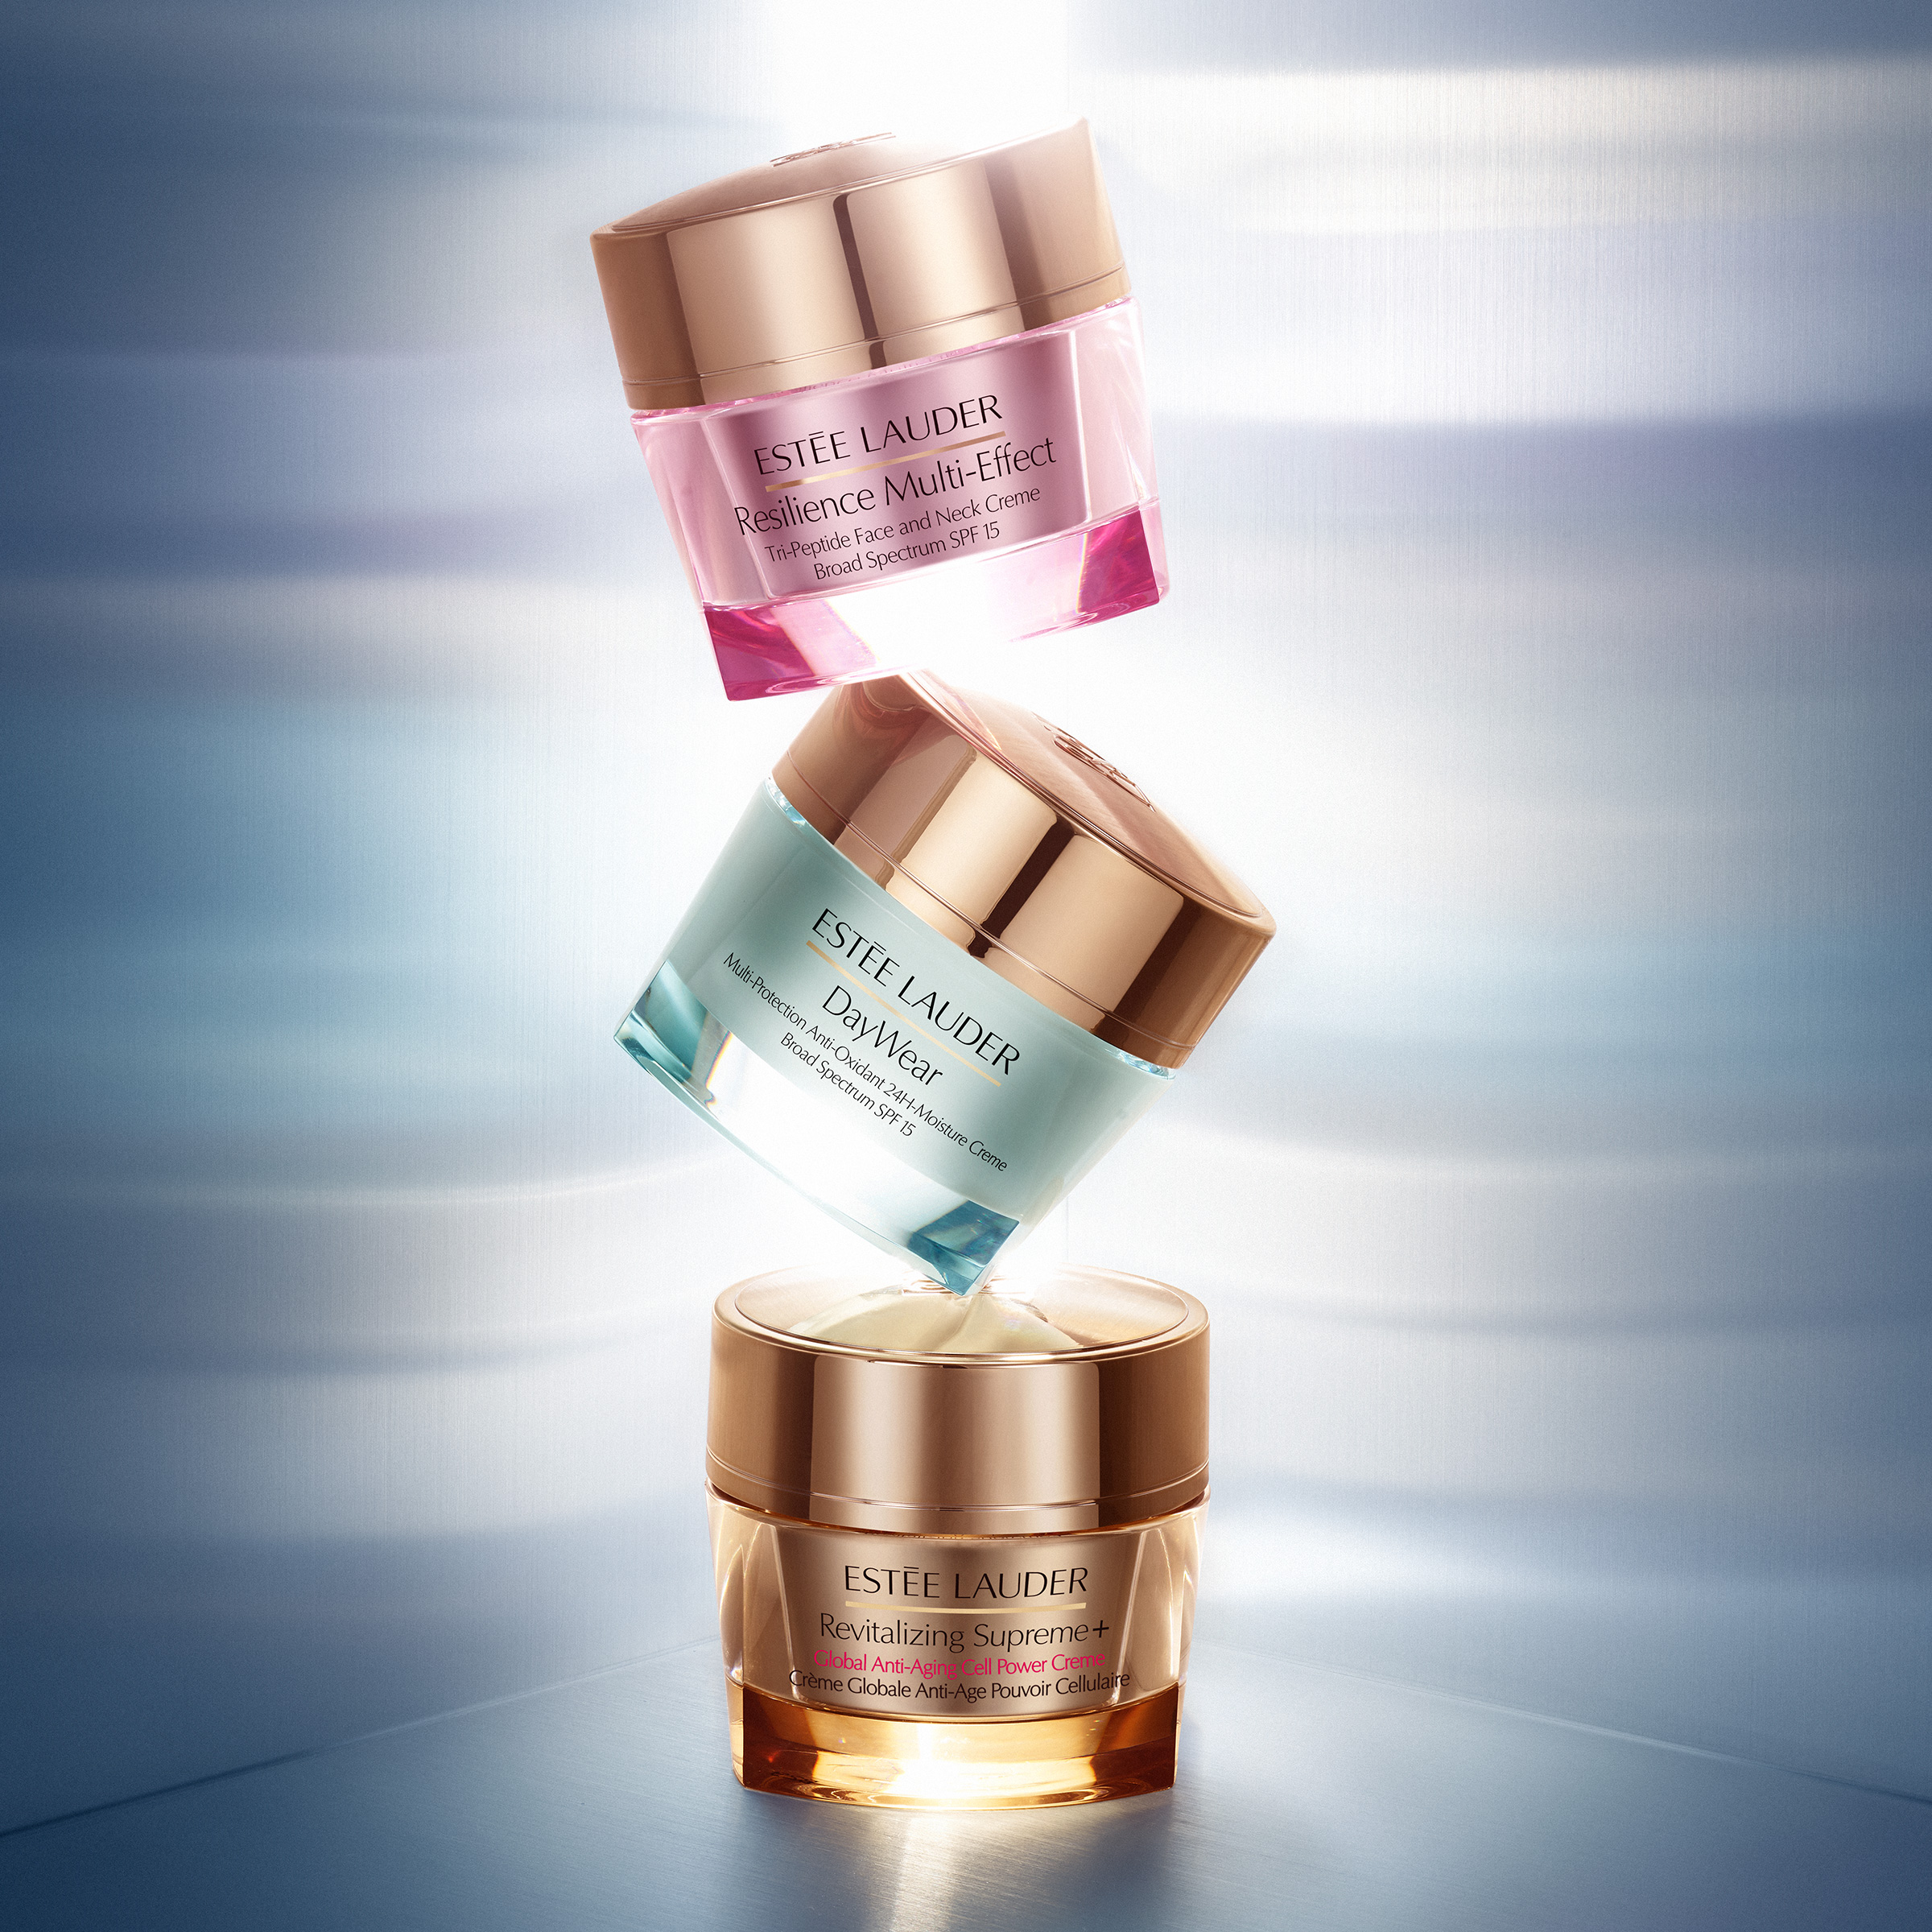 Estee Lauder: $20 OFF on Any 1.7oz or Larger Moisturizer